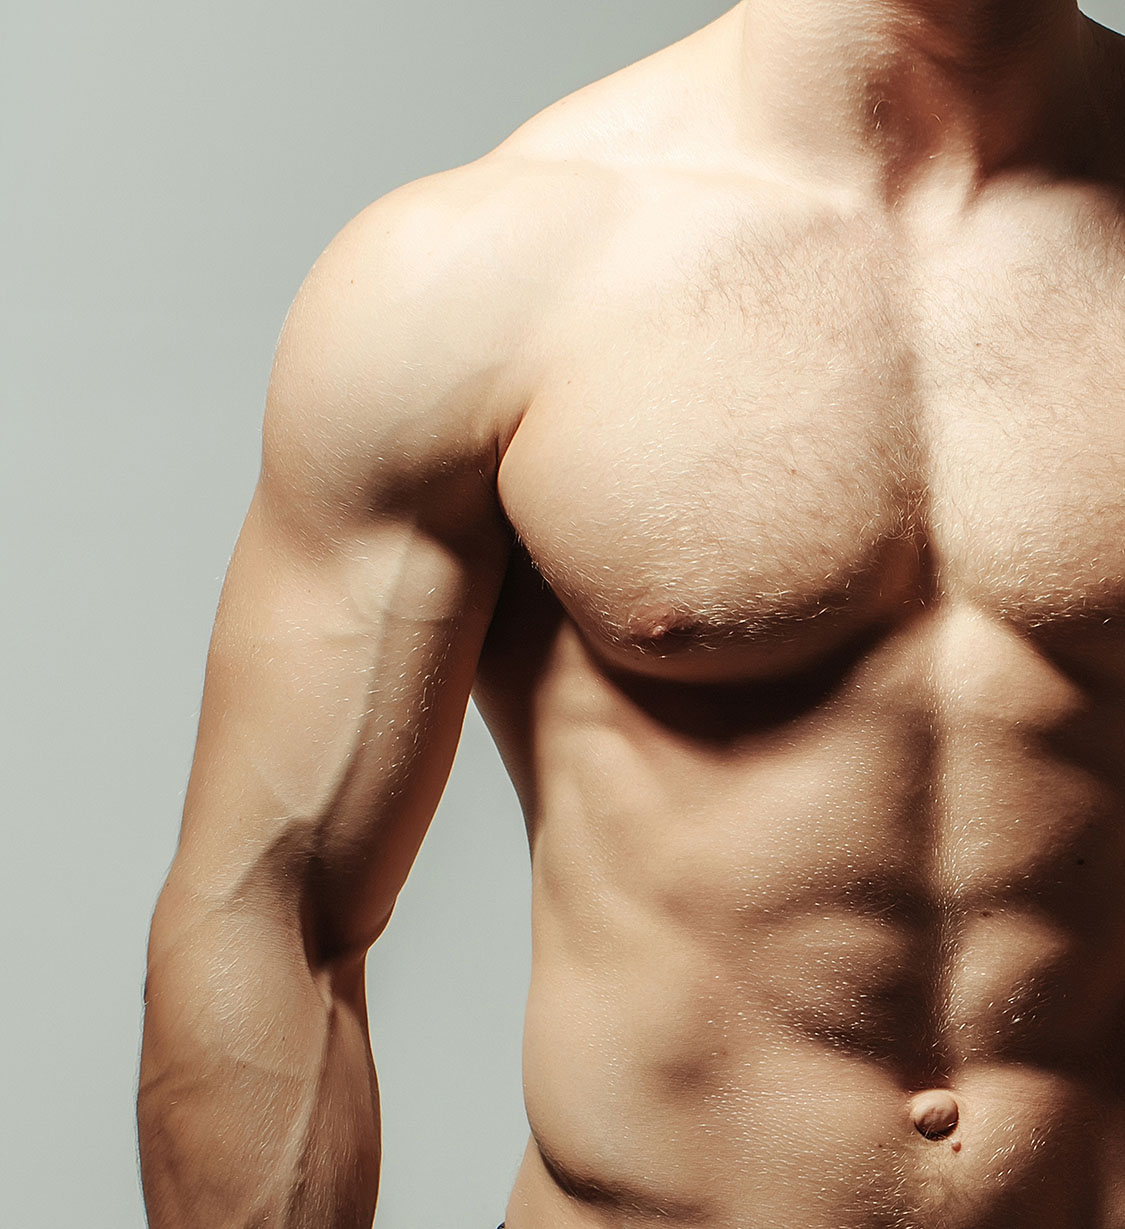 Young mans muscular chest and left arm